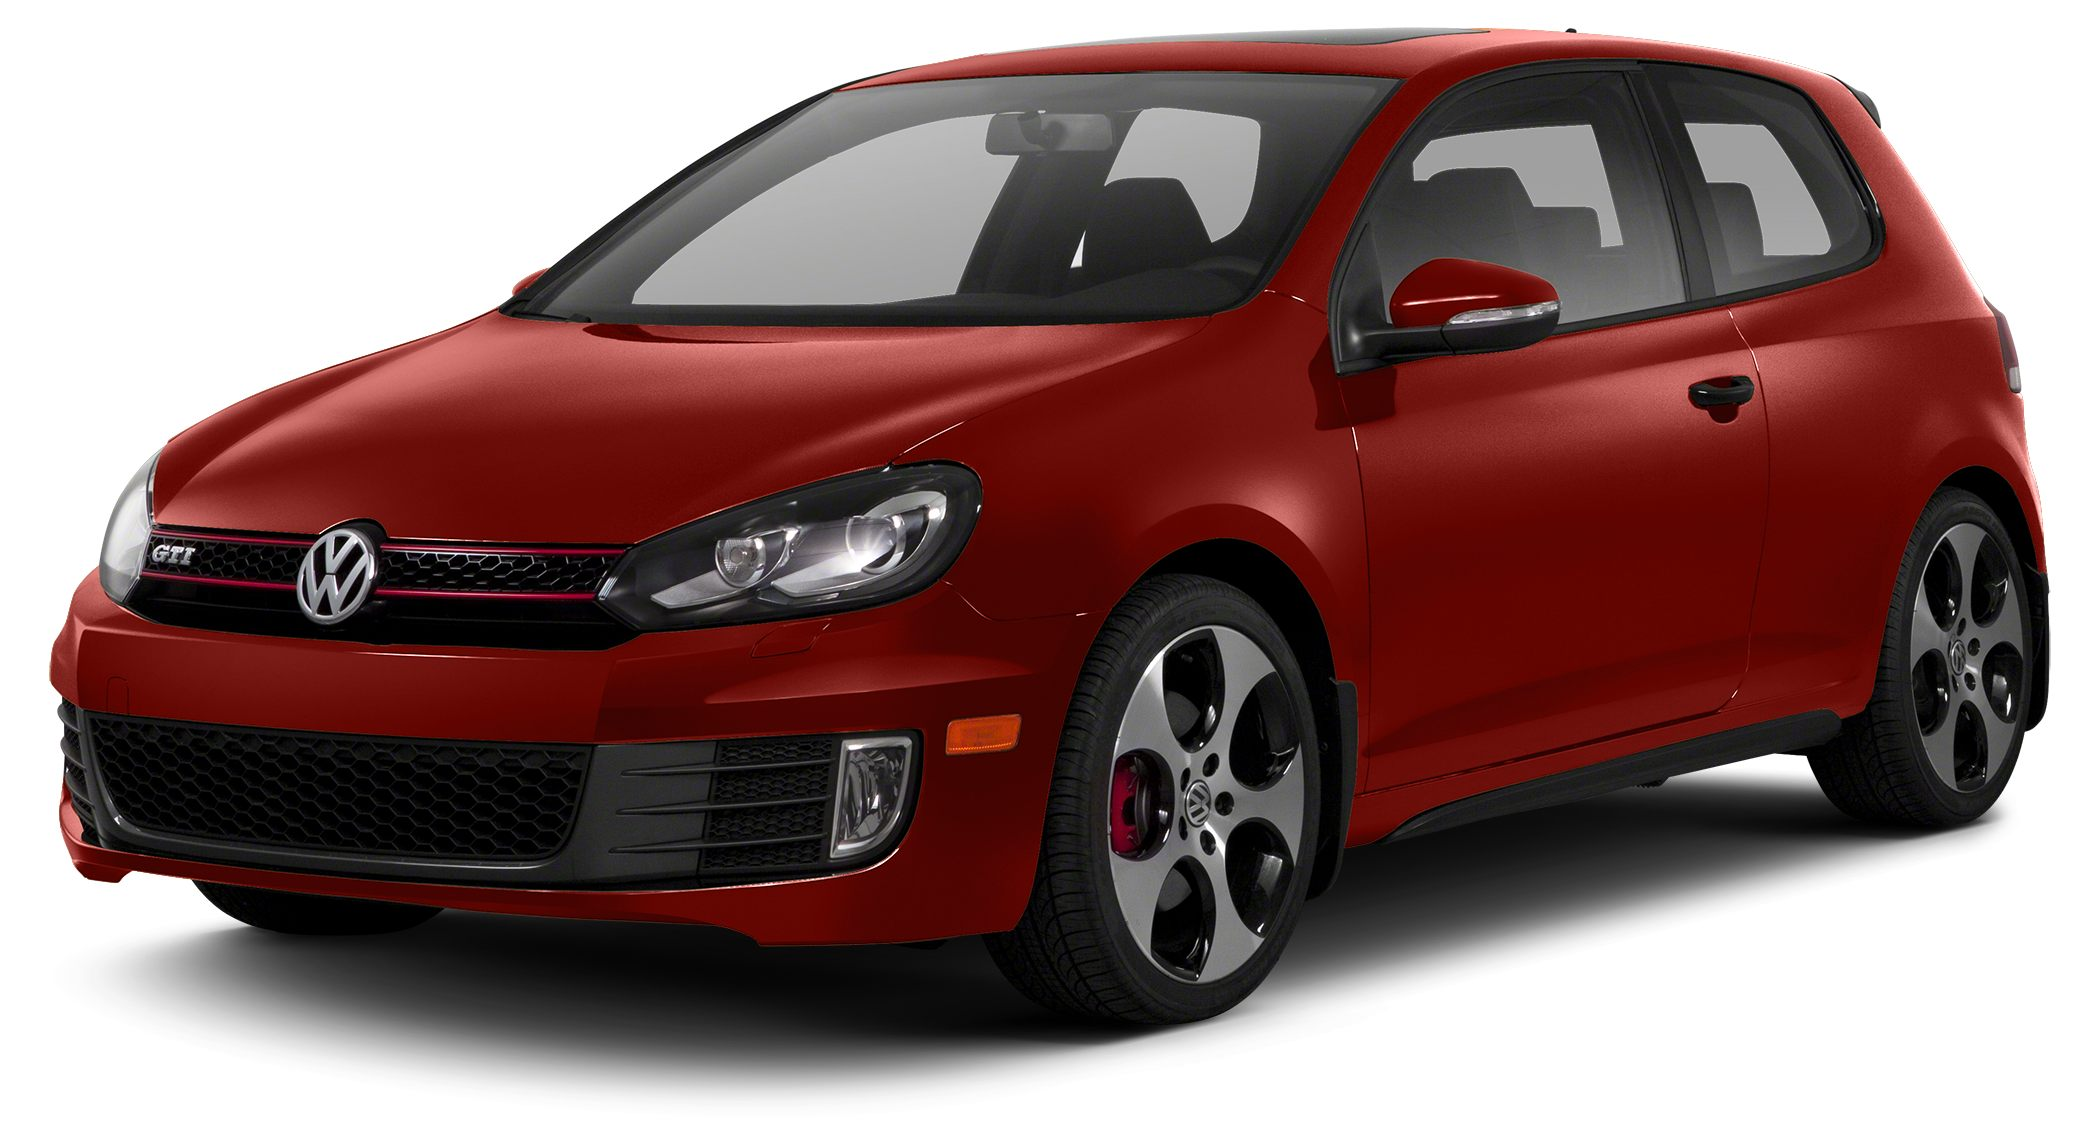 2013 Volkswagen GTI 2-Door FLOOD ADVANTAGE PROGRAM And FULLY SERVICED AND RECONDITIONED Turbo